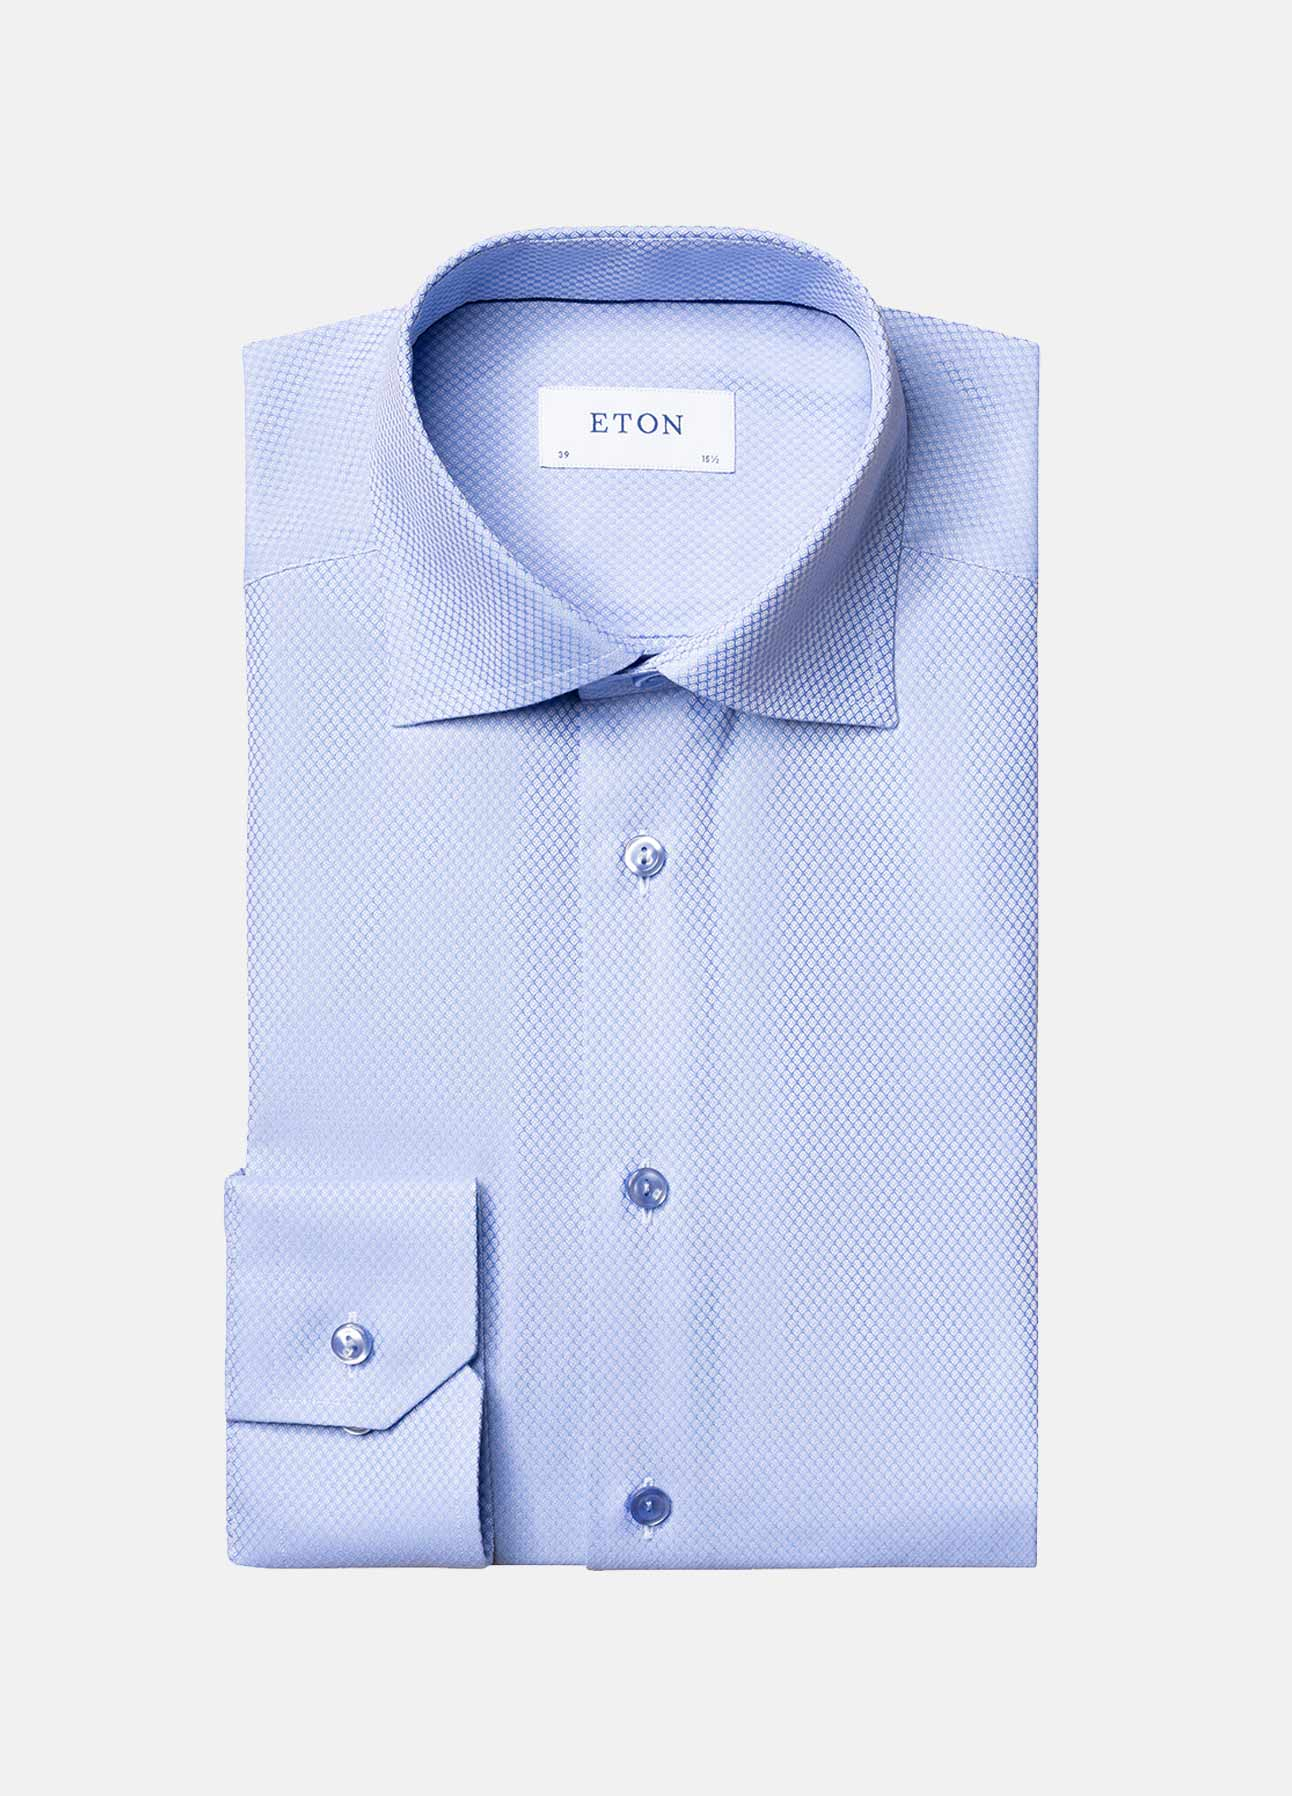 Eton skjorte contemporary fit i blue ss21